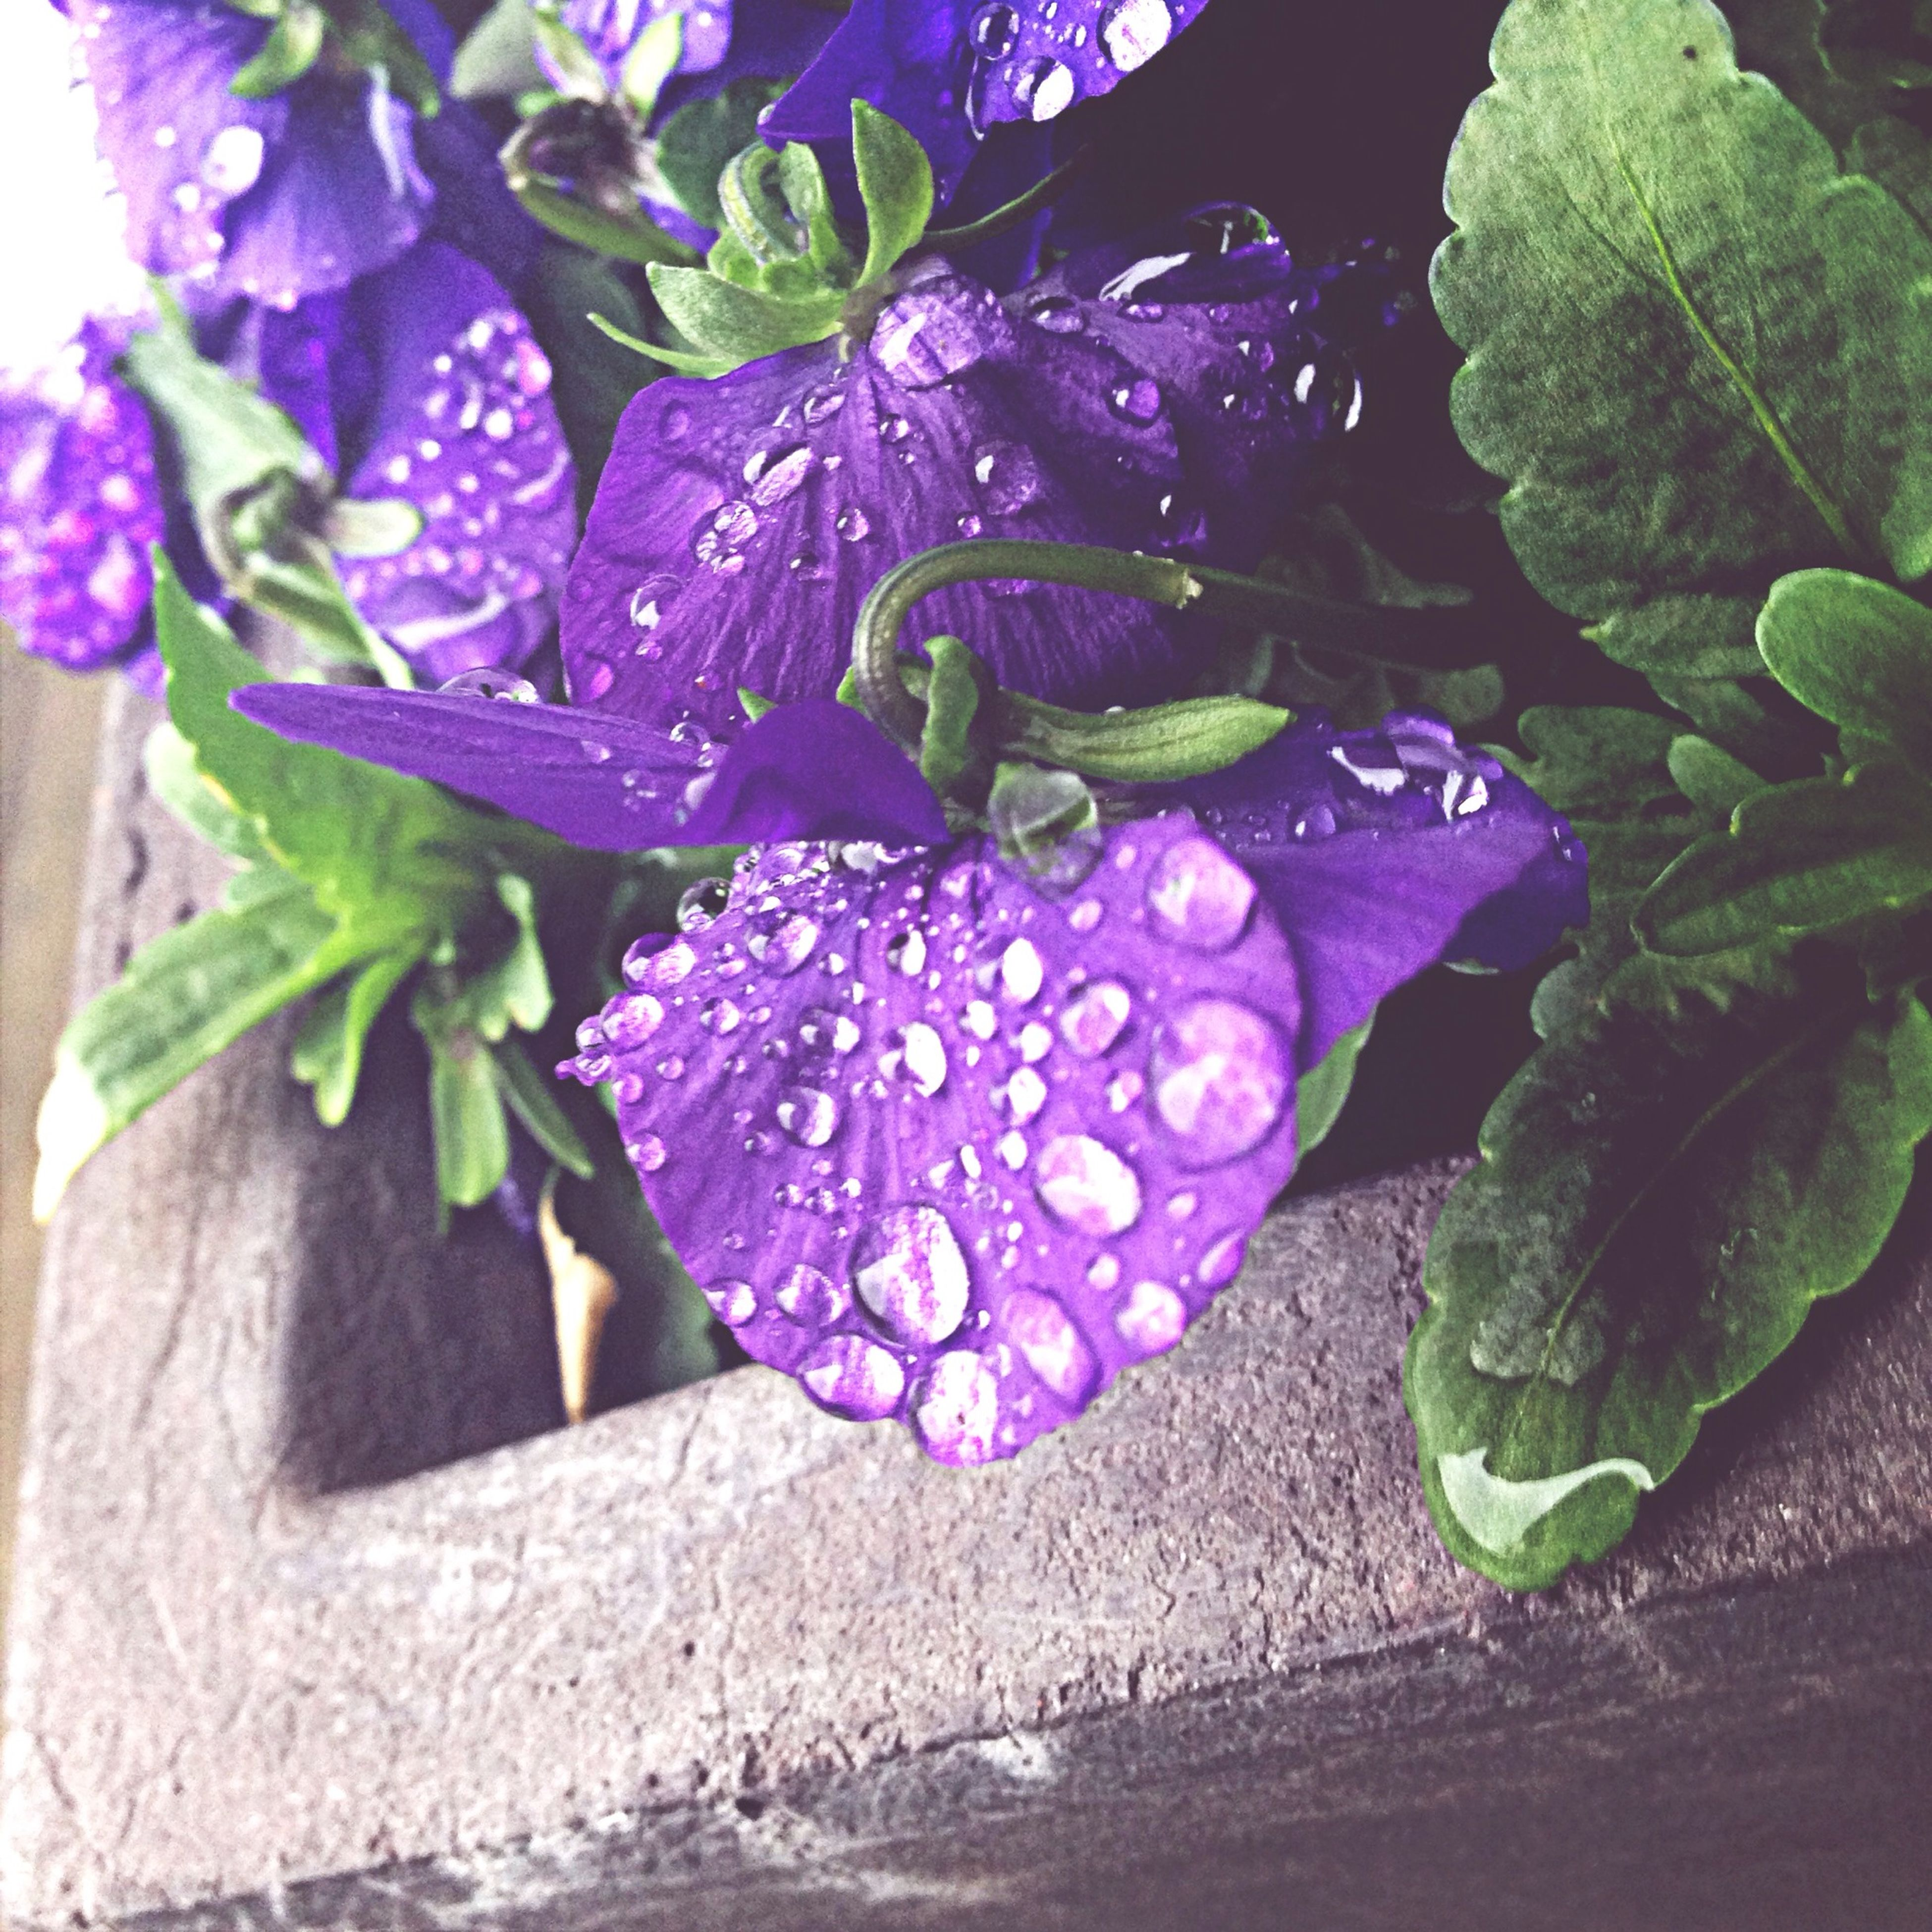 flower, freshness, growth, fragility, petal, purple, plant, leaf, beauty in nature, pink color, nature, close-up, flower head, blooming, in bloom, potted plant, focus on foreground, no people, outdoors, day